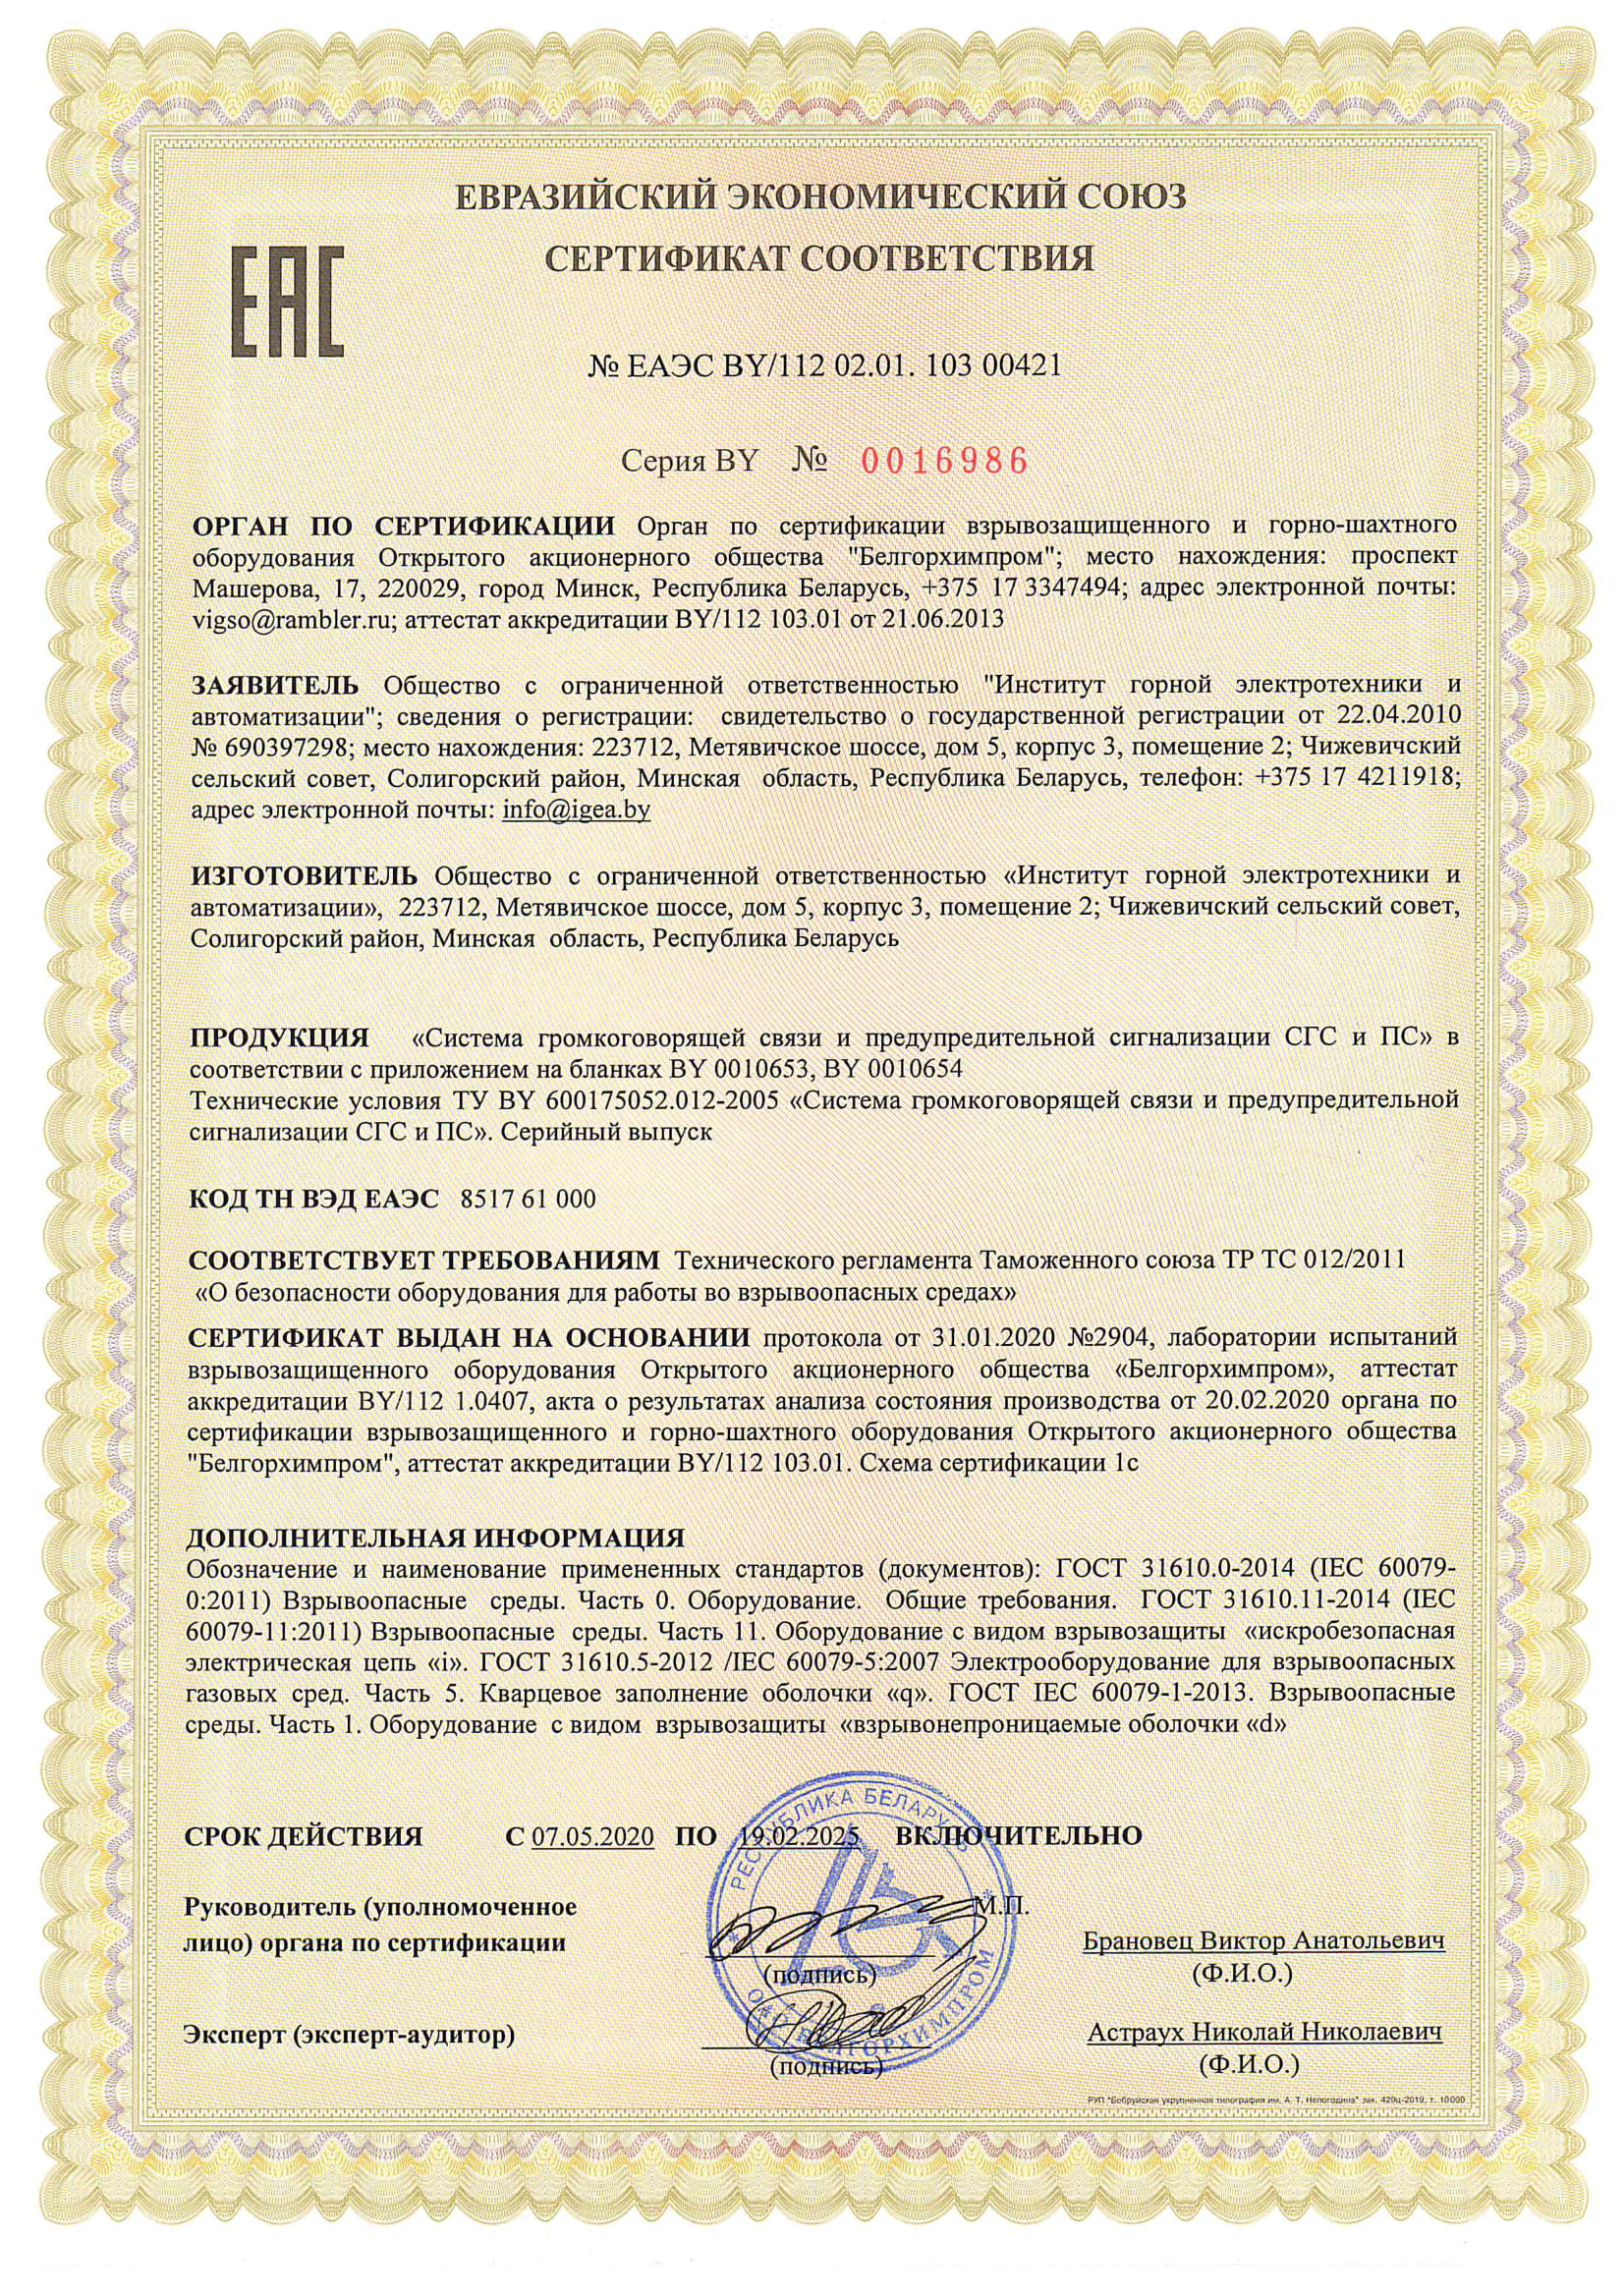 Certificate of conformity to CU TR 012/2011 No.ЕАЭС BY/112 02.01. 103 00421 valid till 19.02.2025